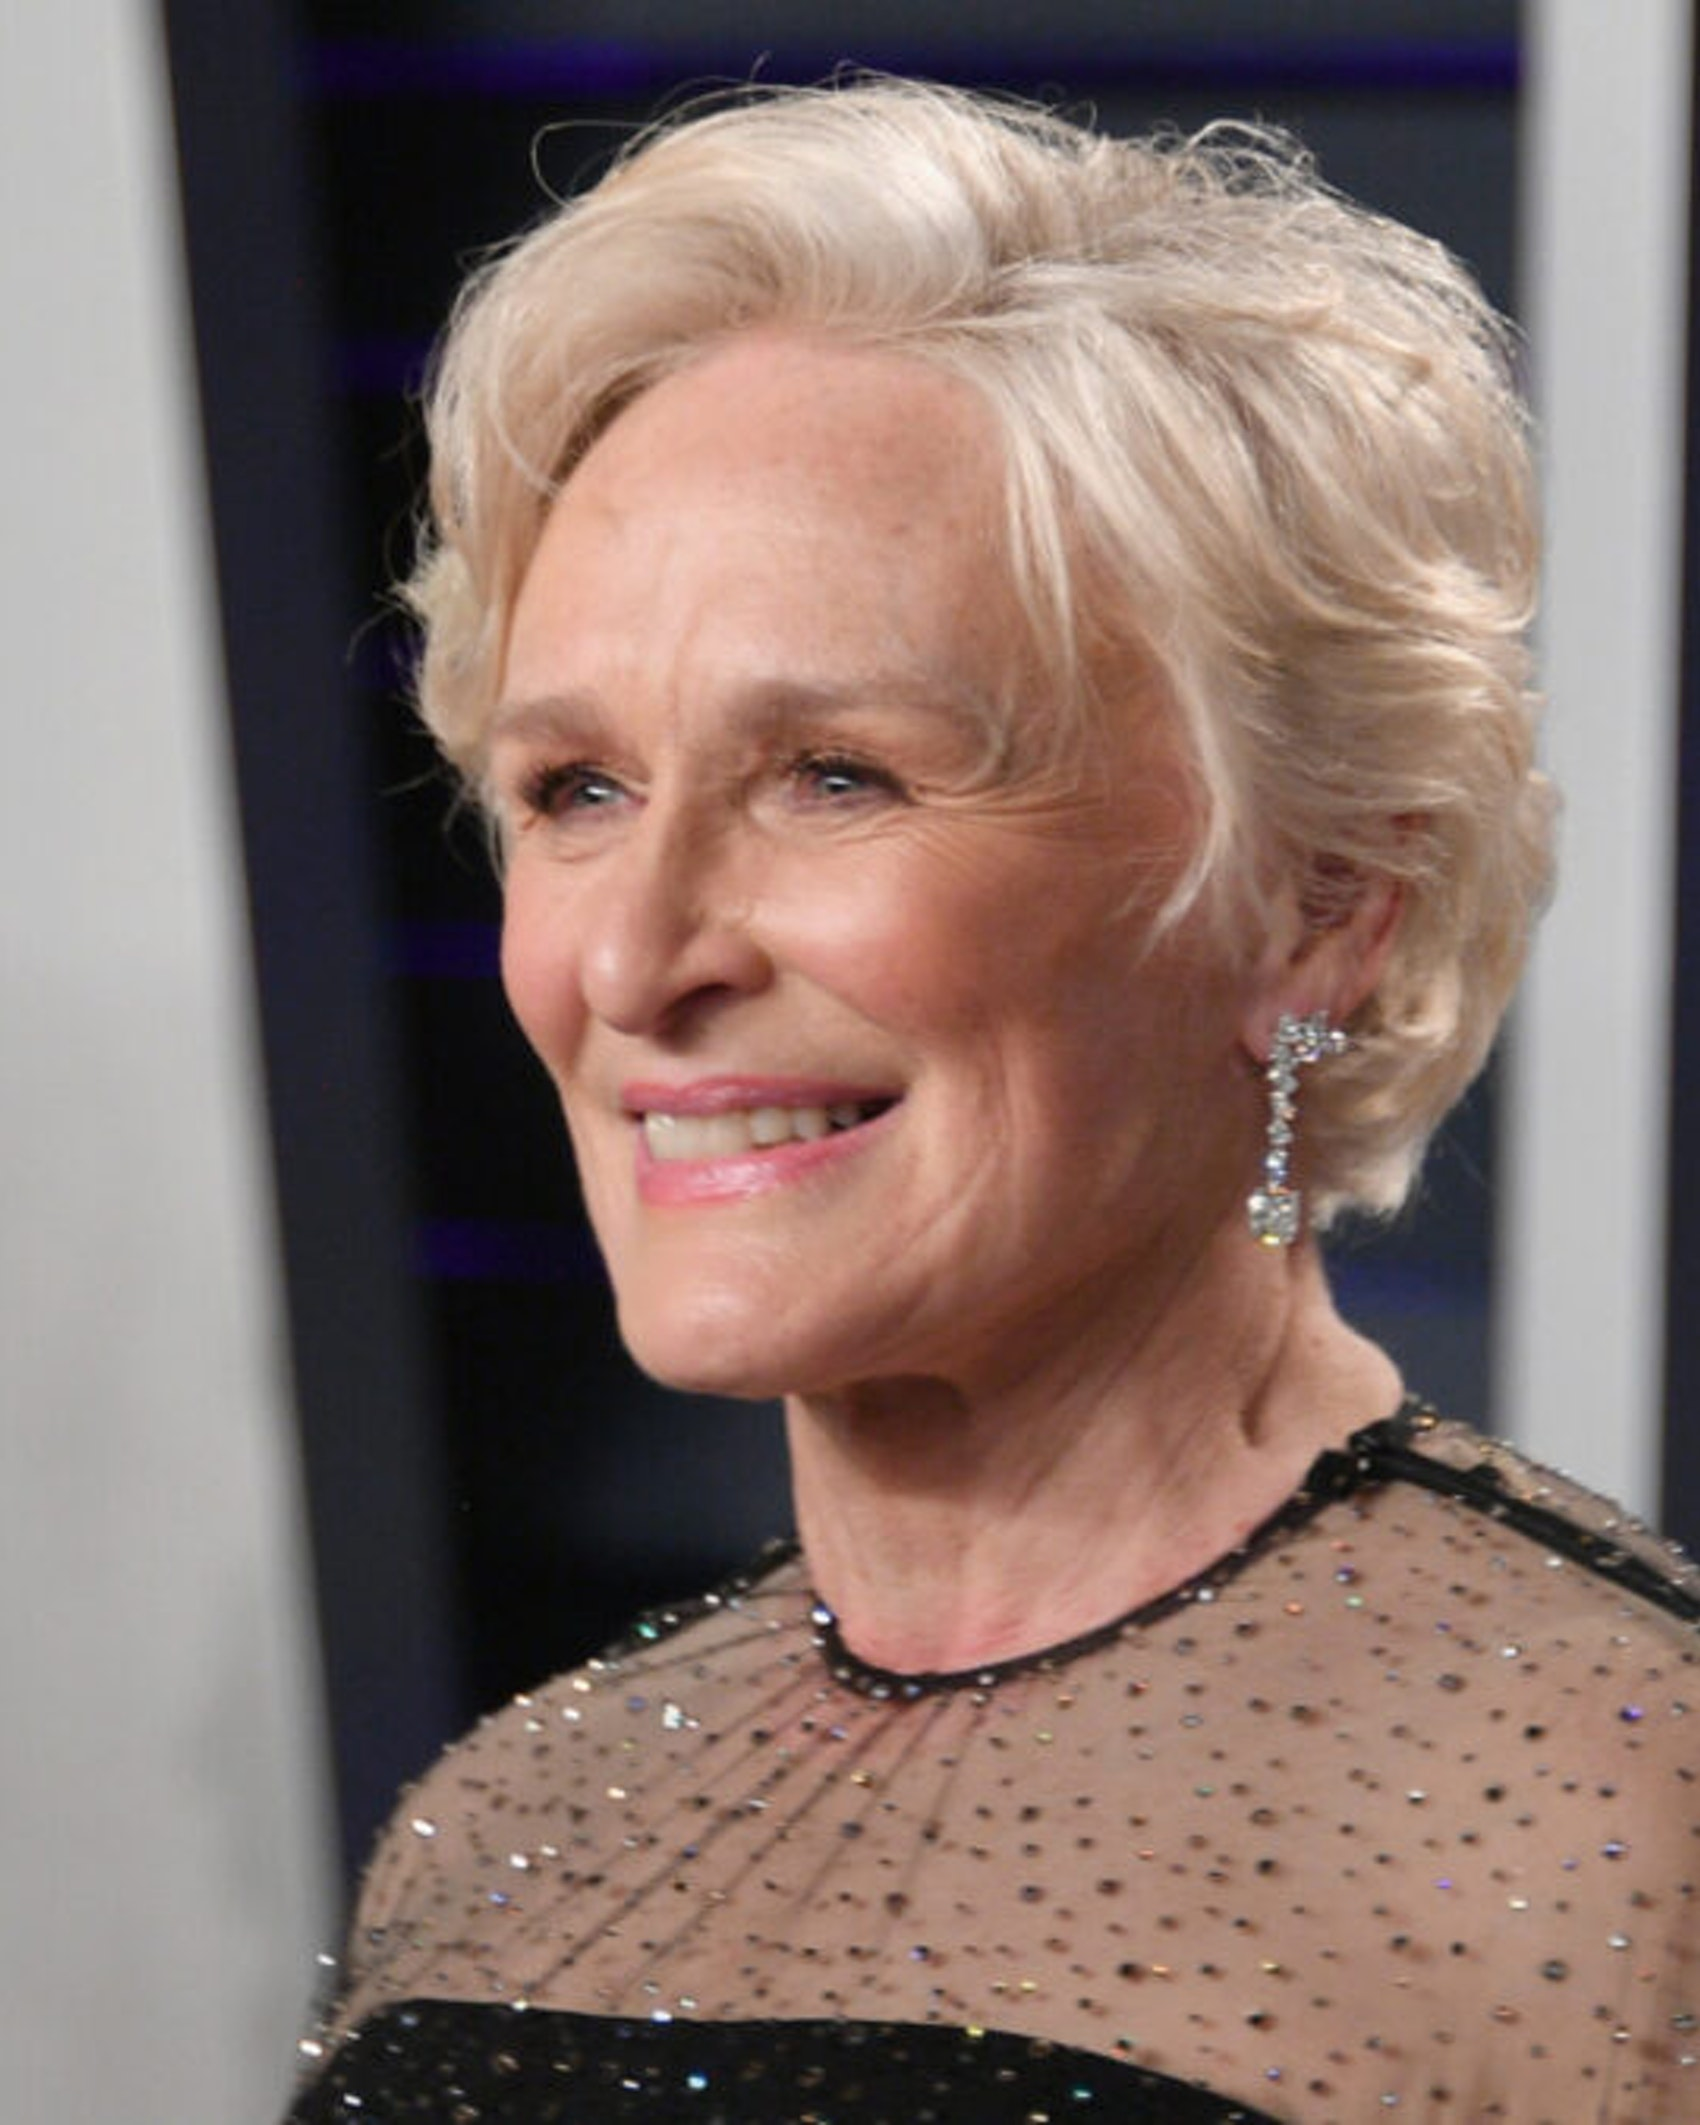 Glenn Close attends the 2019 Vanity Fair Oscar Party hosted by Radhika Jones at Wallis Annenberg Center for the Performing Arts on February 24, 2019 in Beverly Hills, California.